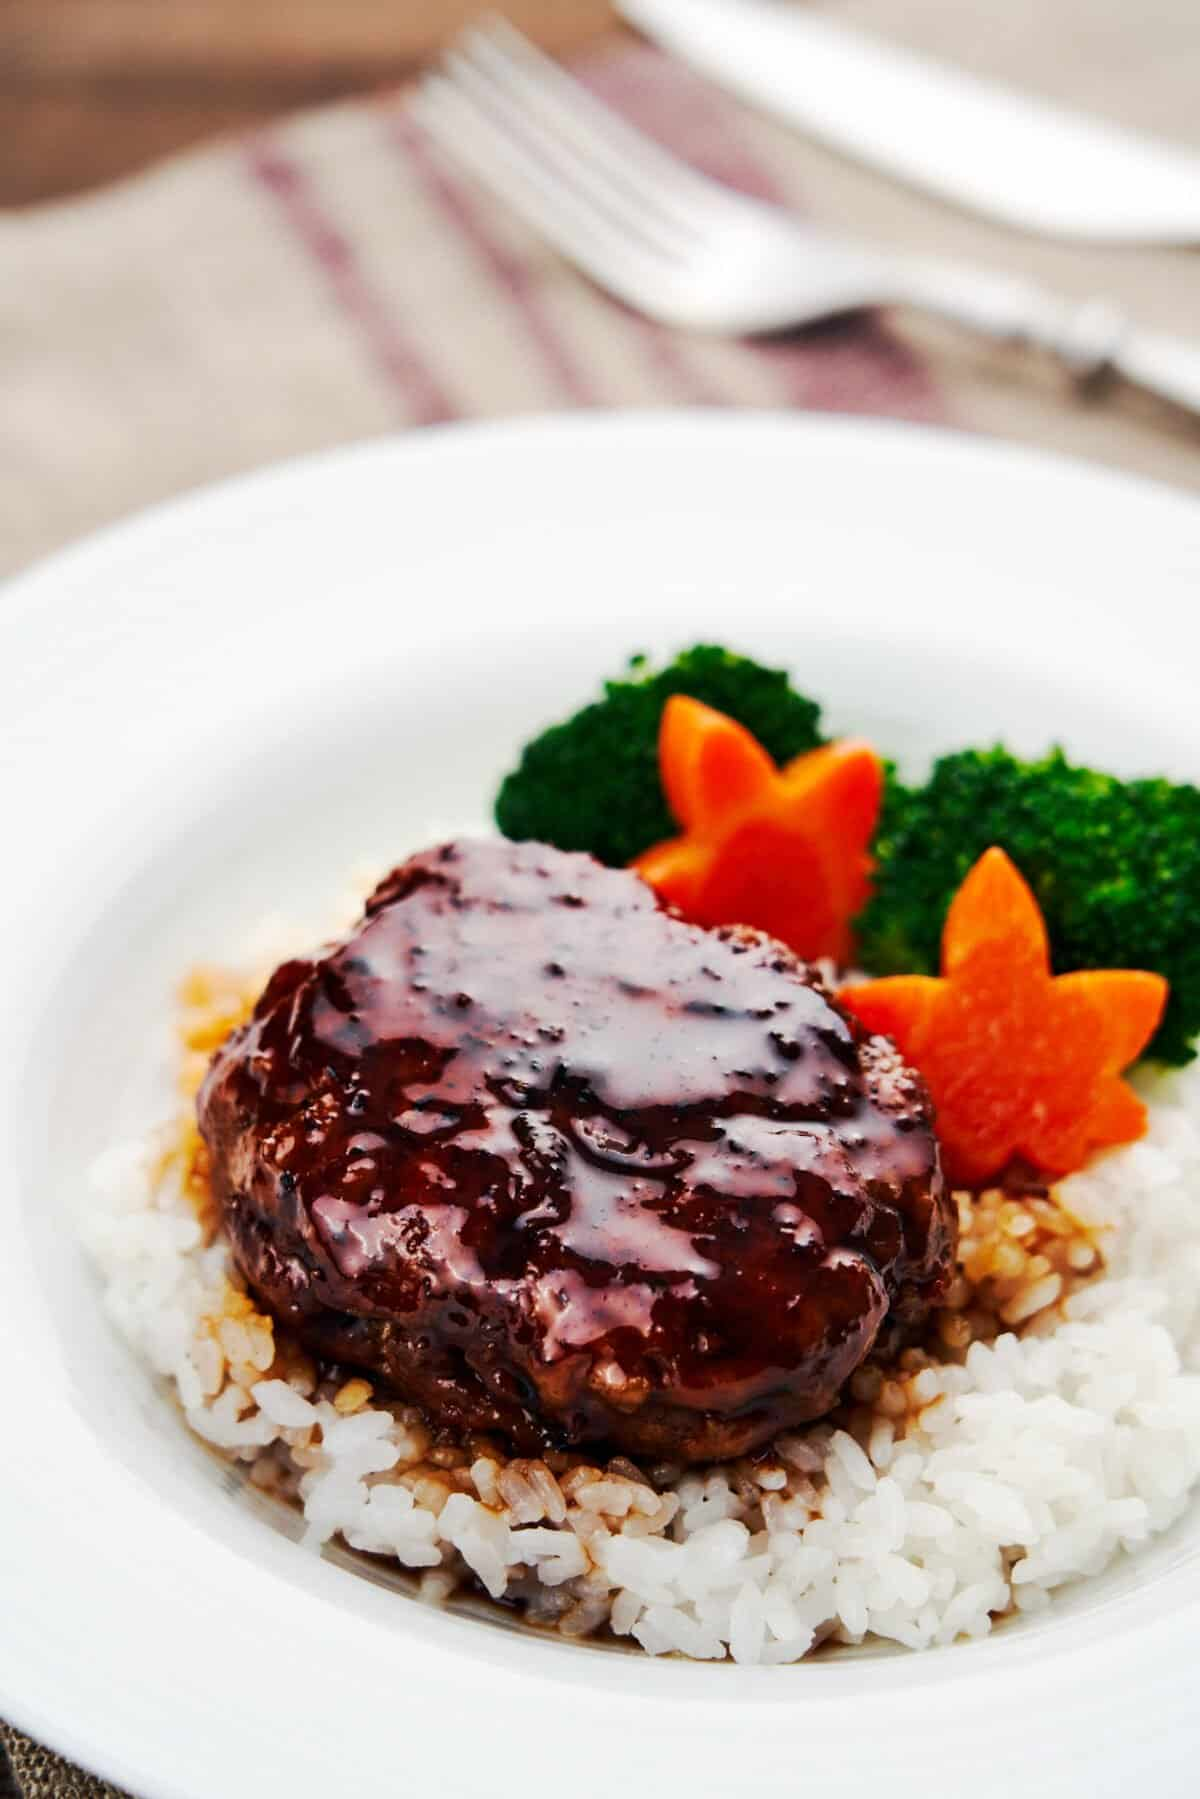 This mouthwatering Japanese Hamburg Steak recipe is glazed with an easy 3-ingredient teriyaki sauce.